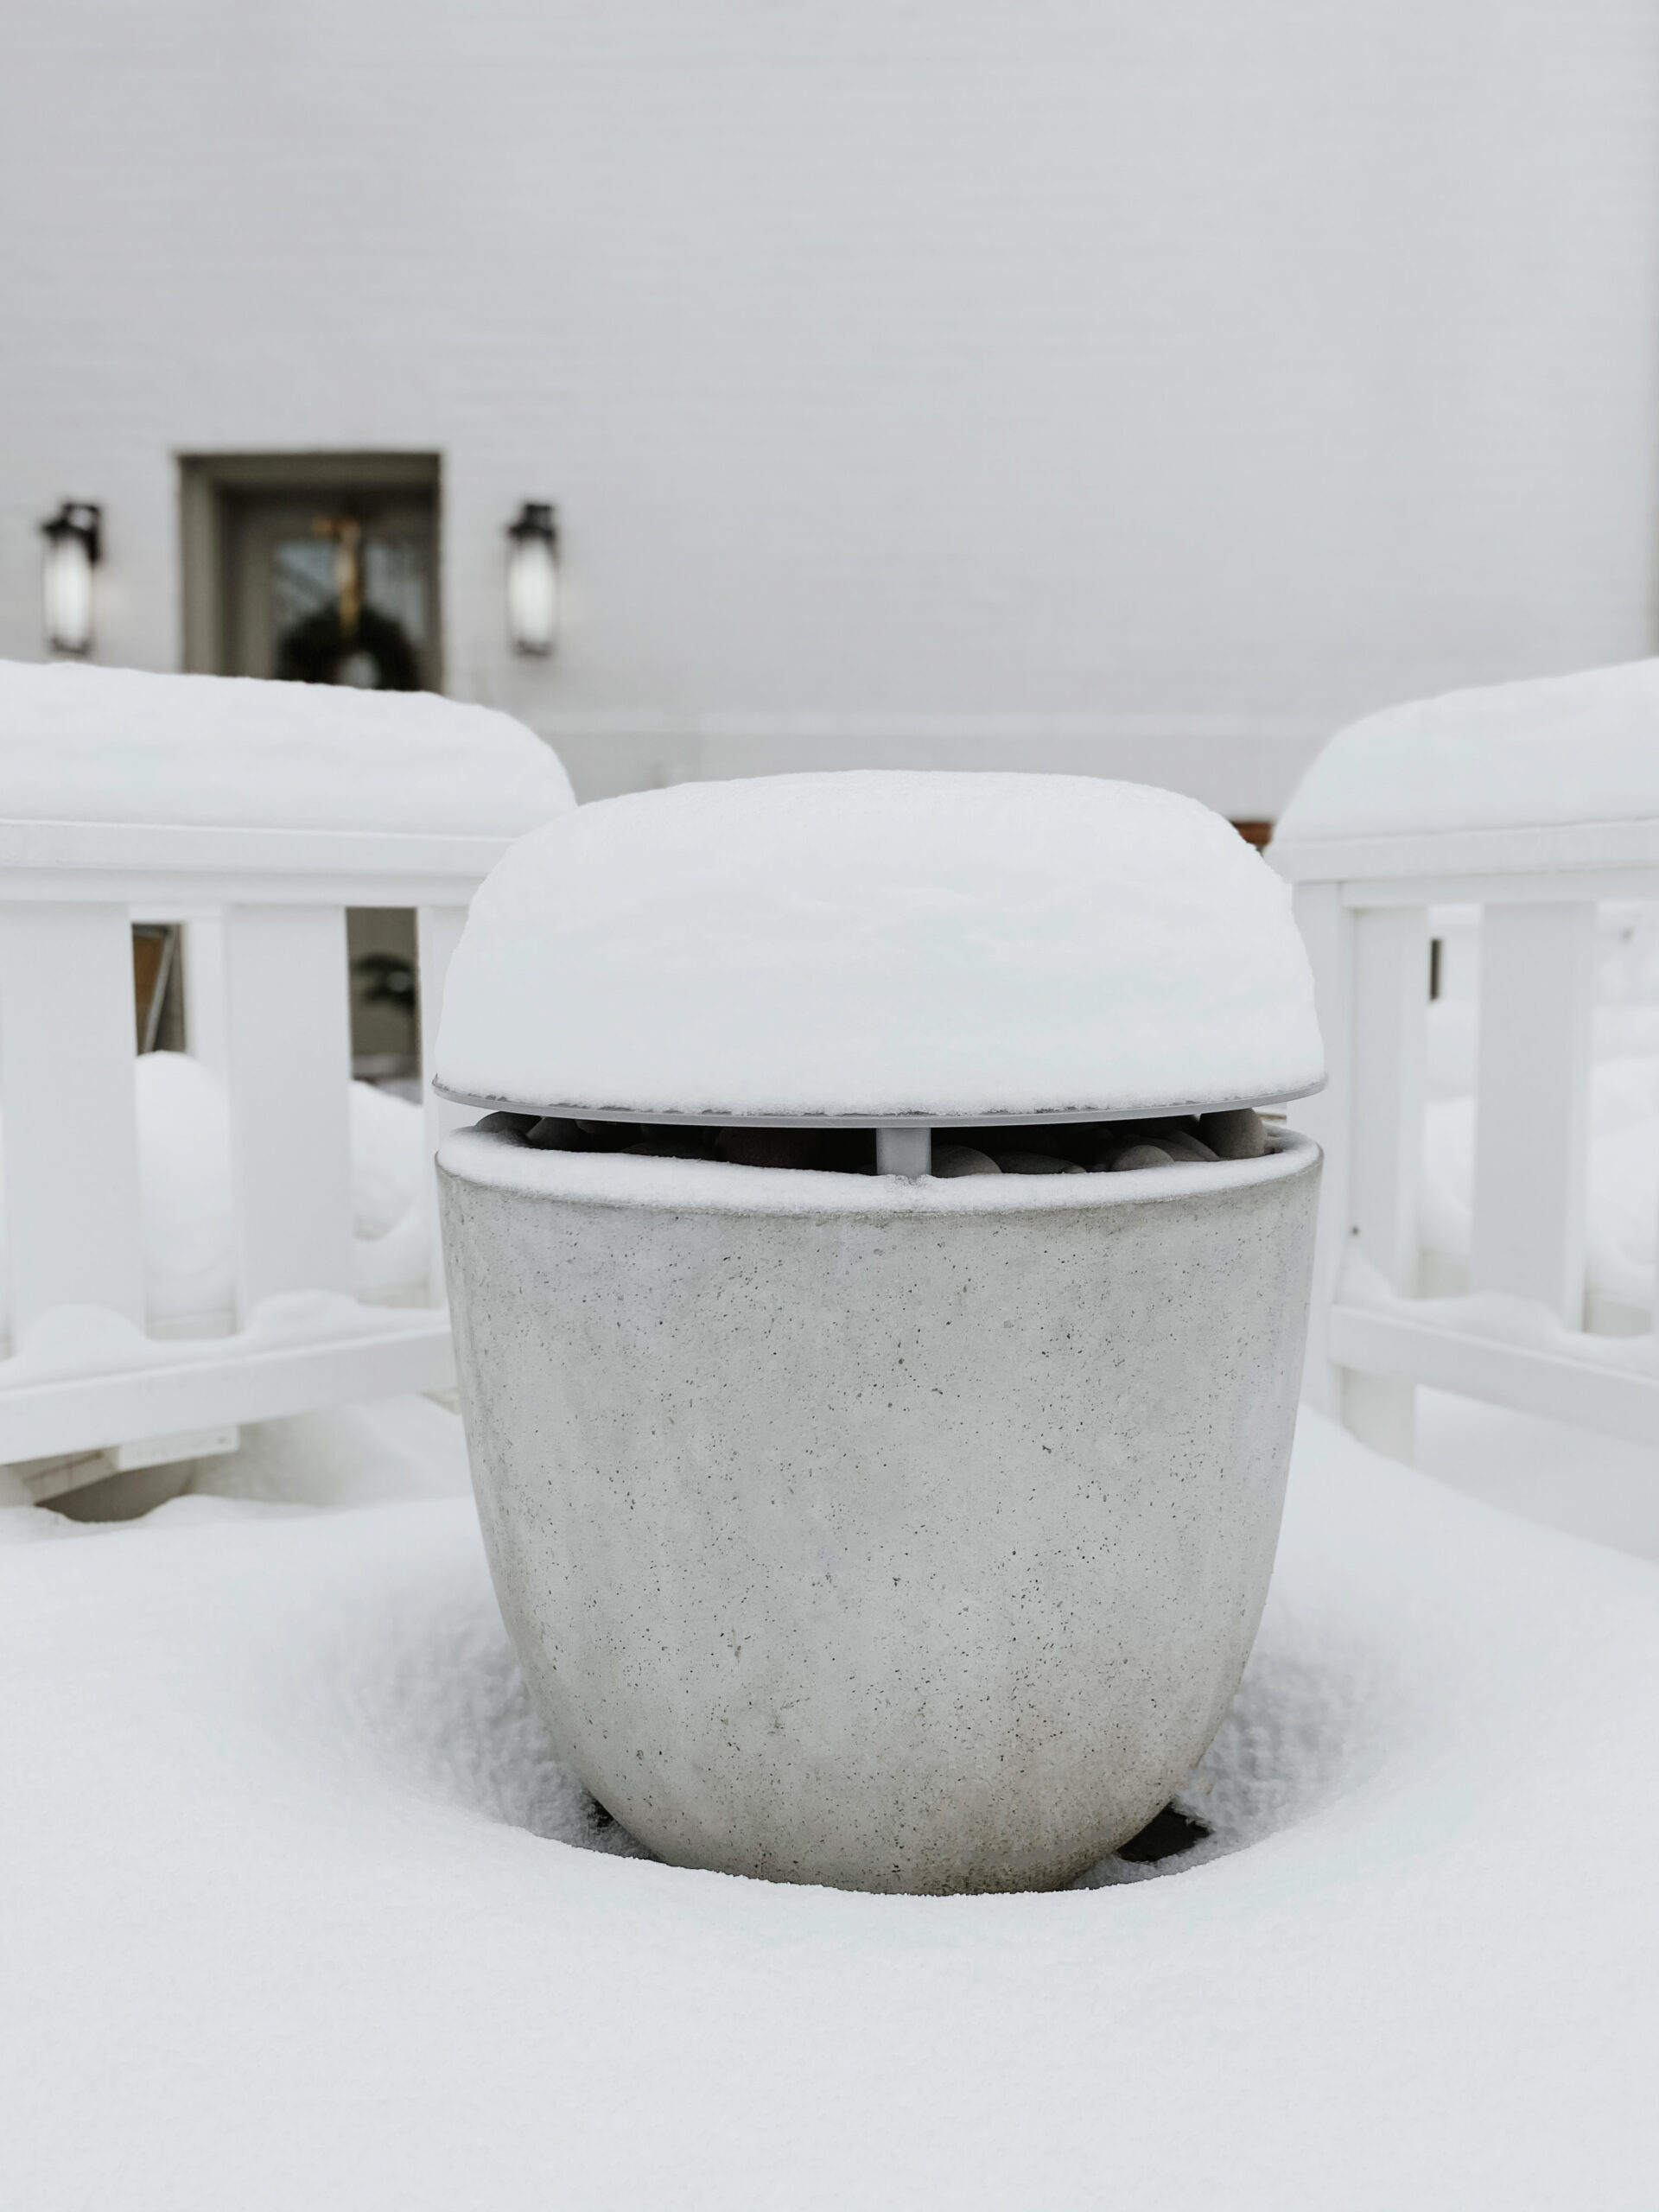 Fire-pit-in-the-snow